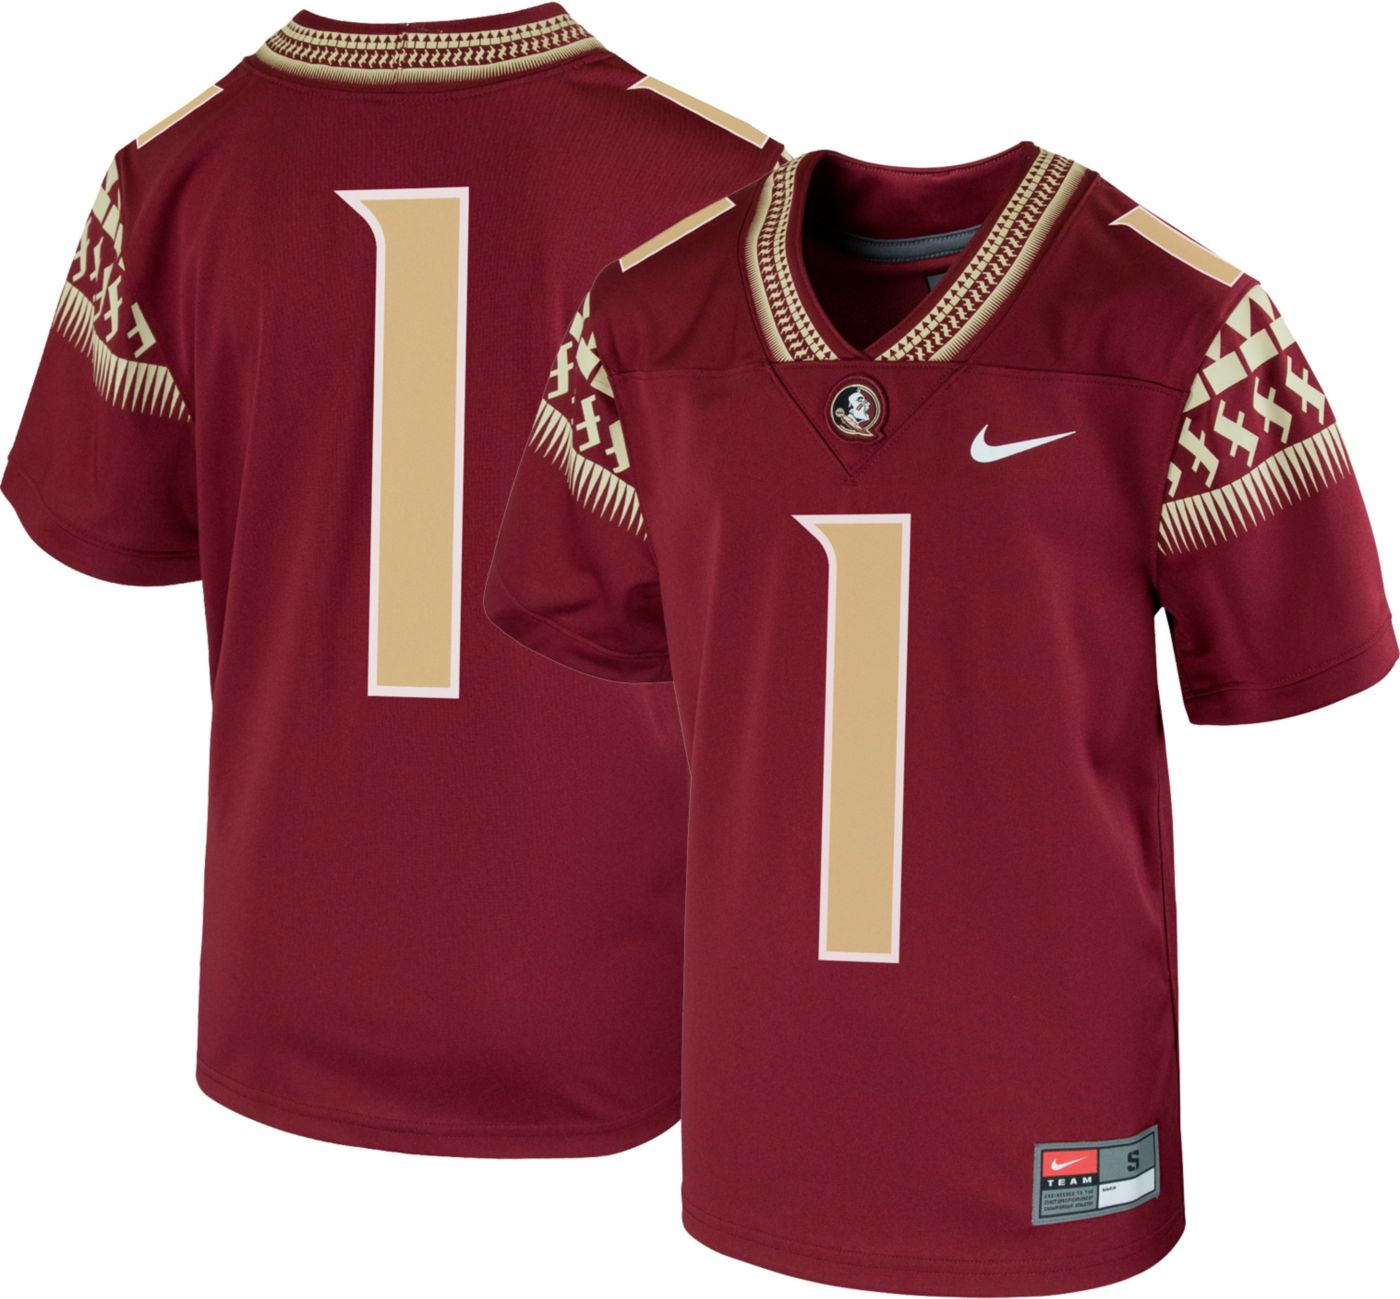 Nike Youth Florida State Seminoles #1 Garnet Replica Football Jersey